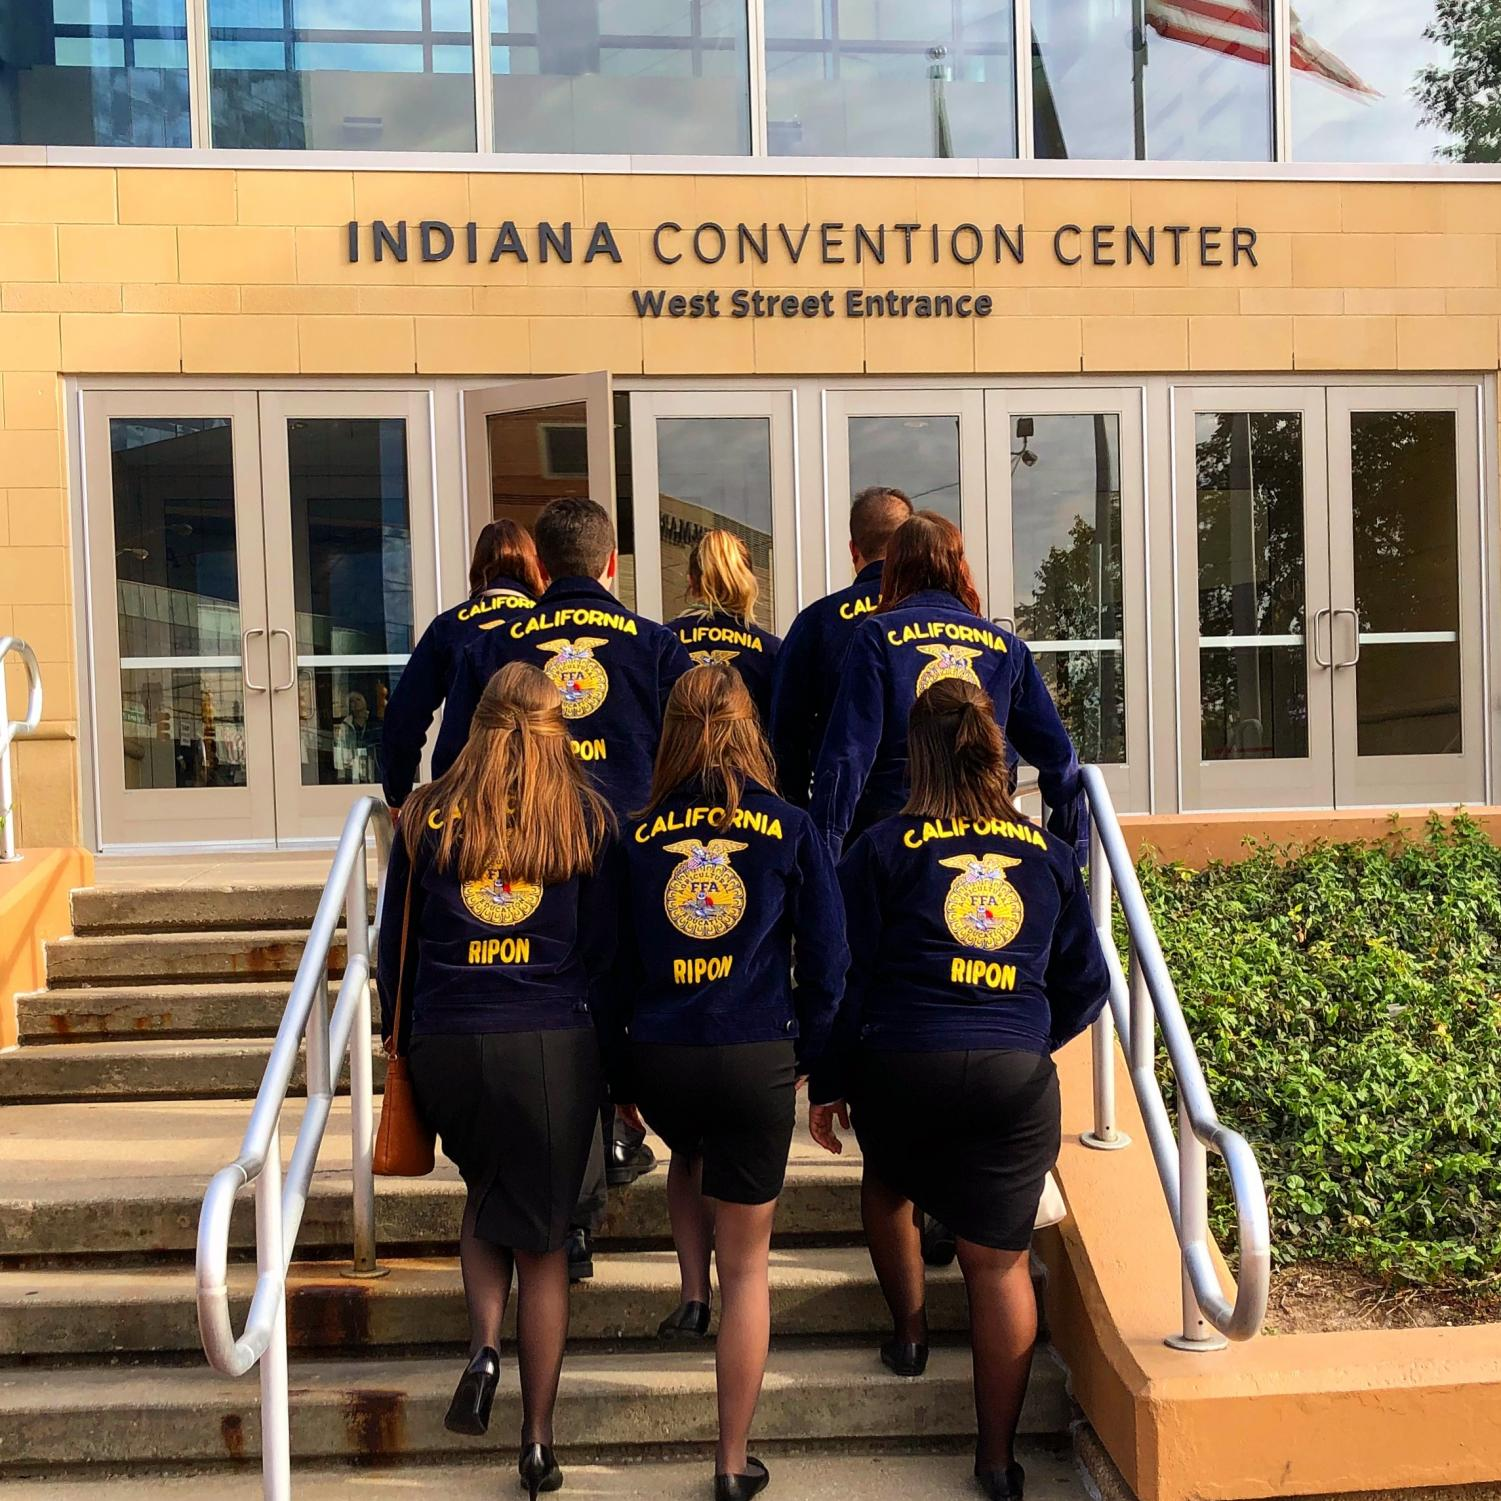 Back row, left to right: Maddie Hoogendorn, Kayla Keating, Stephen Defreitas. Middle row, left to right: Ean Richards, Megan Harlan. Front row: Nicole Powell, Macie McPeak, Kaitlyn Avila.  Students walk up to the Indiana Convention Center on their way to many activities at National Convention.